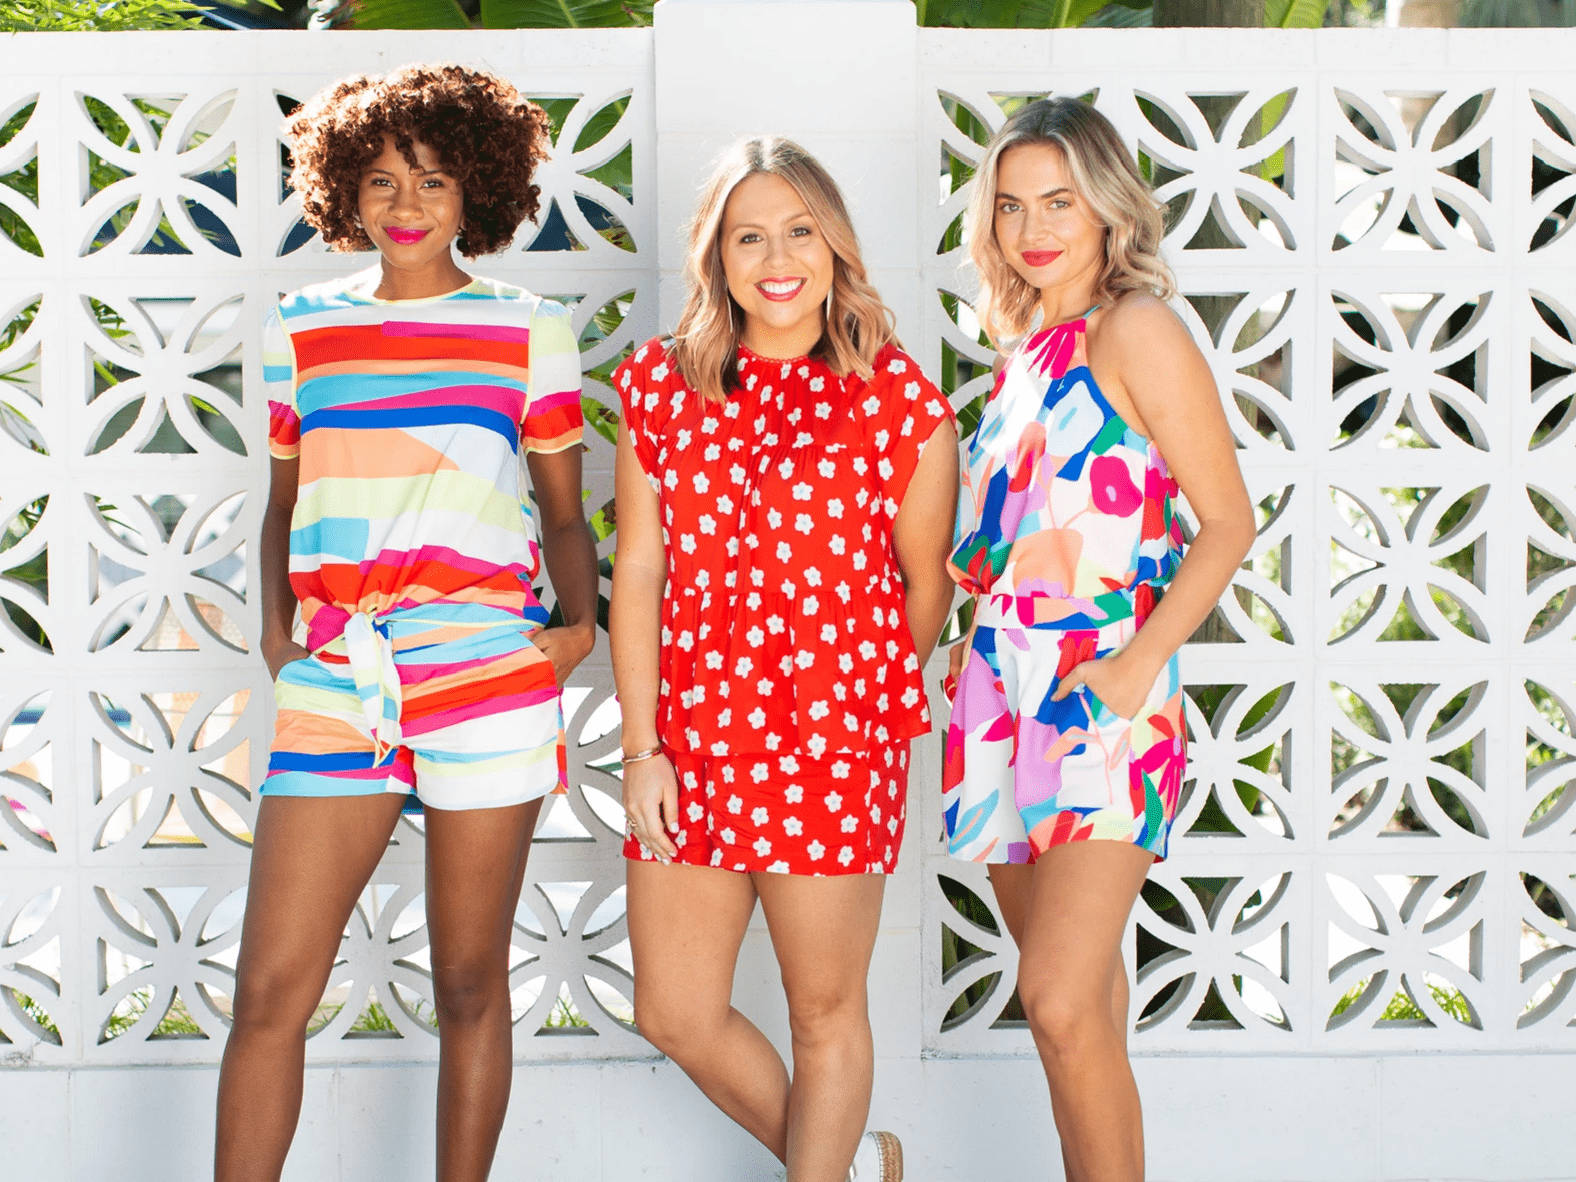 Rock Your Summer Wardrobe with the Crosby Collection